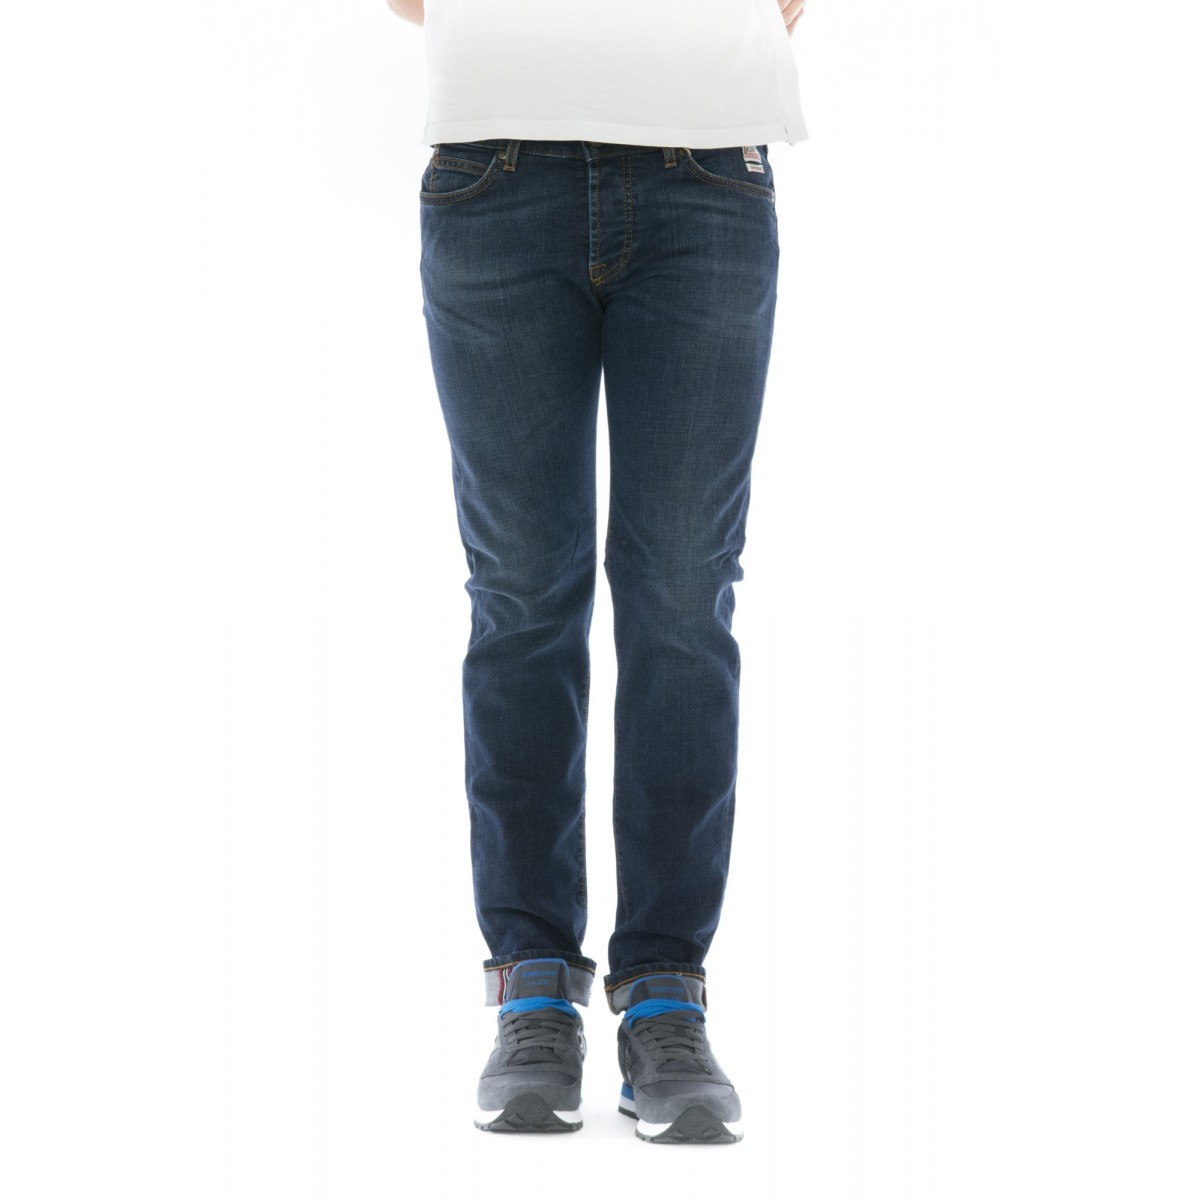 Jeans - 529 pater